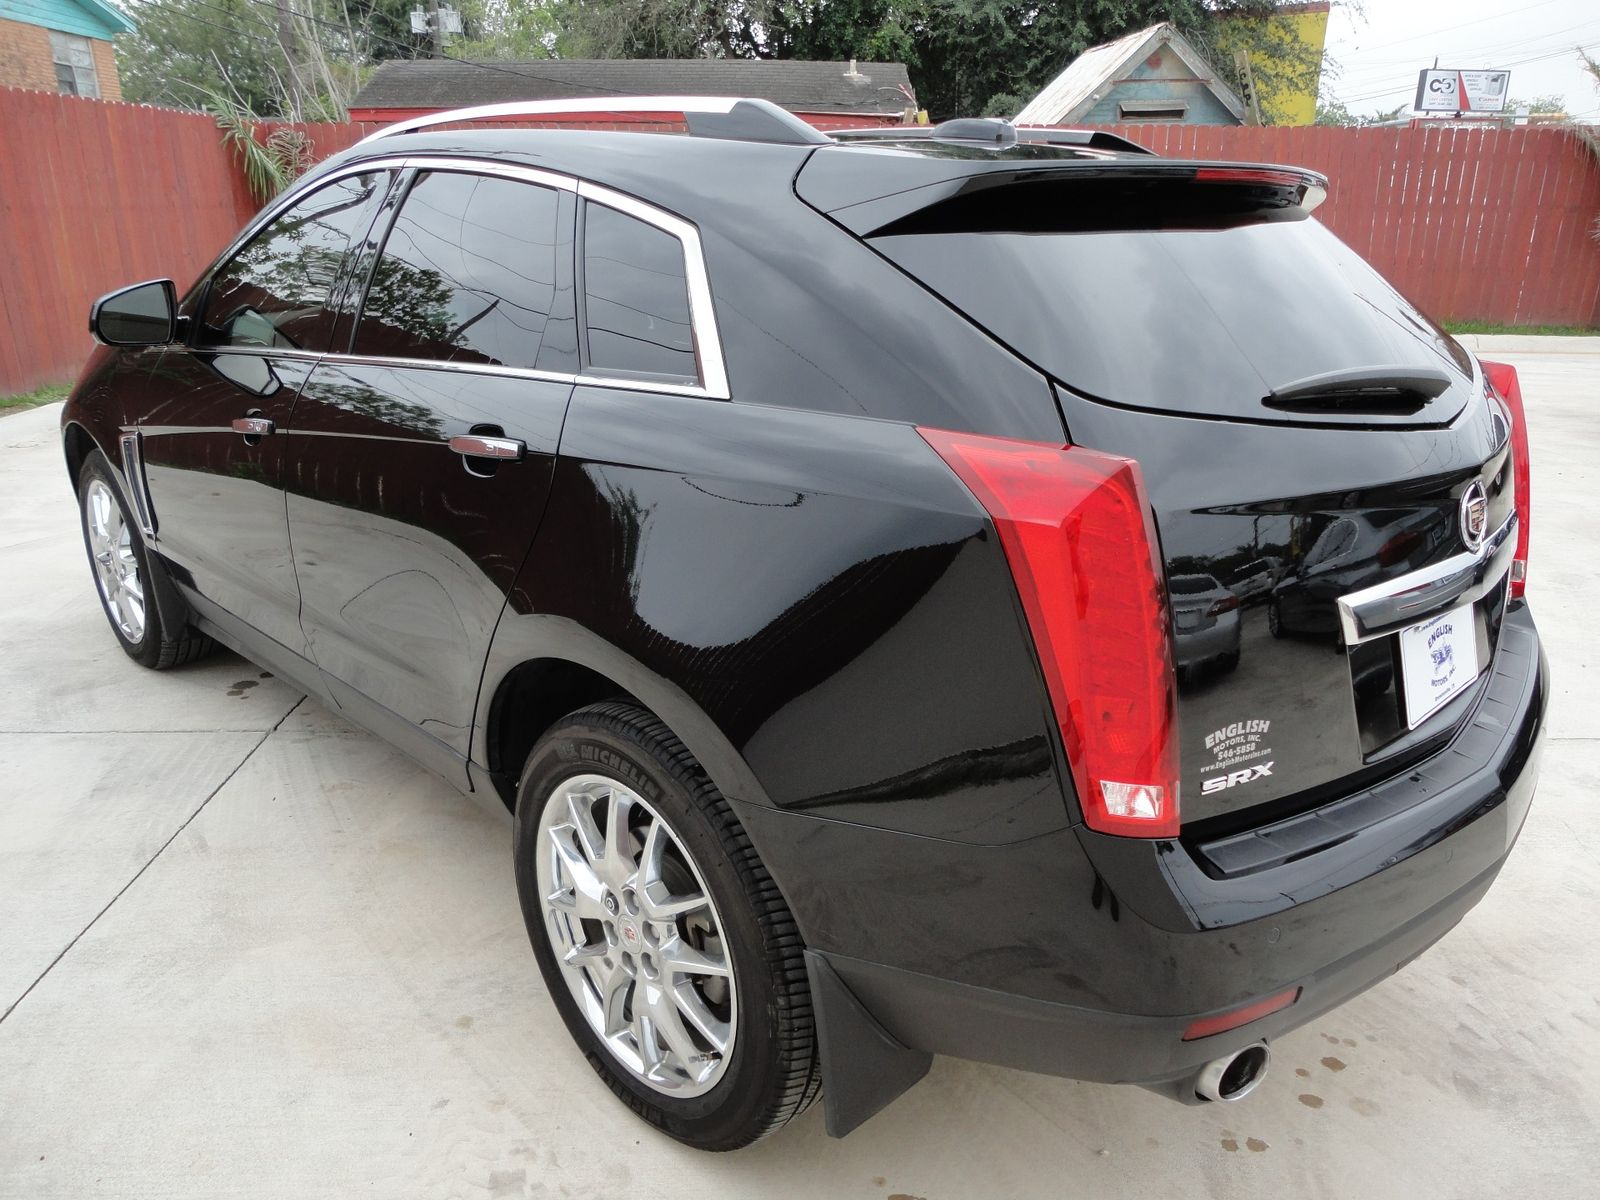 same be interior but chocolate cream my of love instead all black and much baby the seats grey srx cadillac i pin will cooler in new have